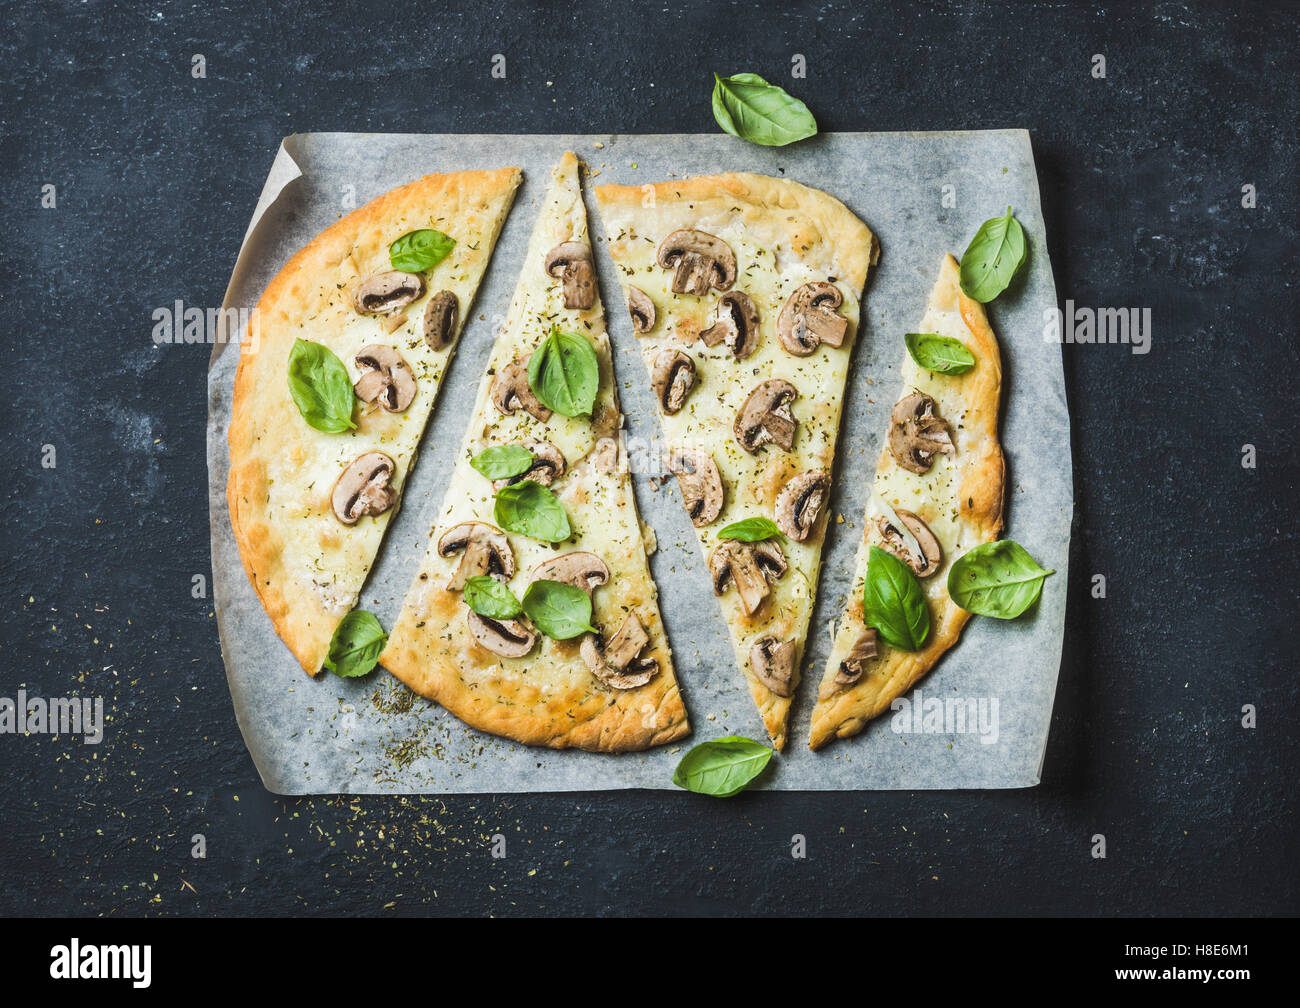 Homemade mushroom pizza with basil cut in slices on baking paper over black stone background, top view, horizontal - Stock Image